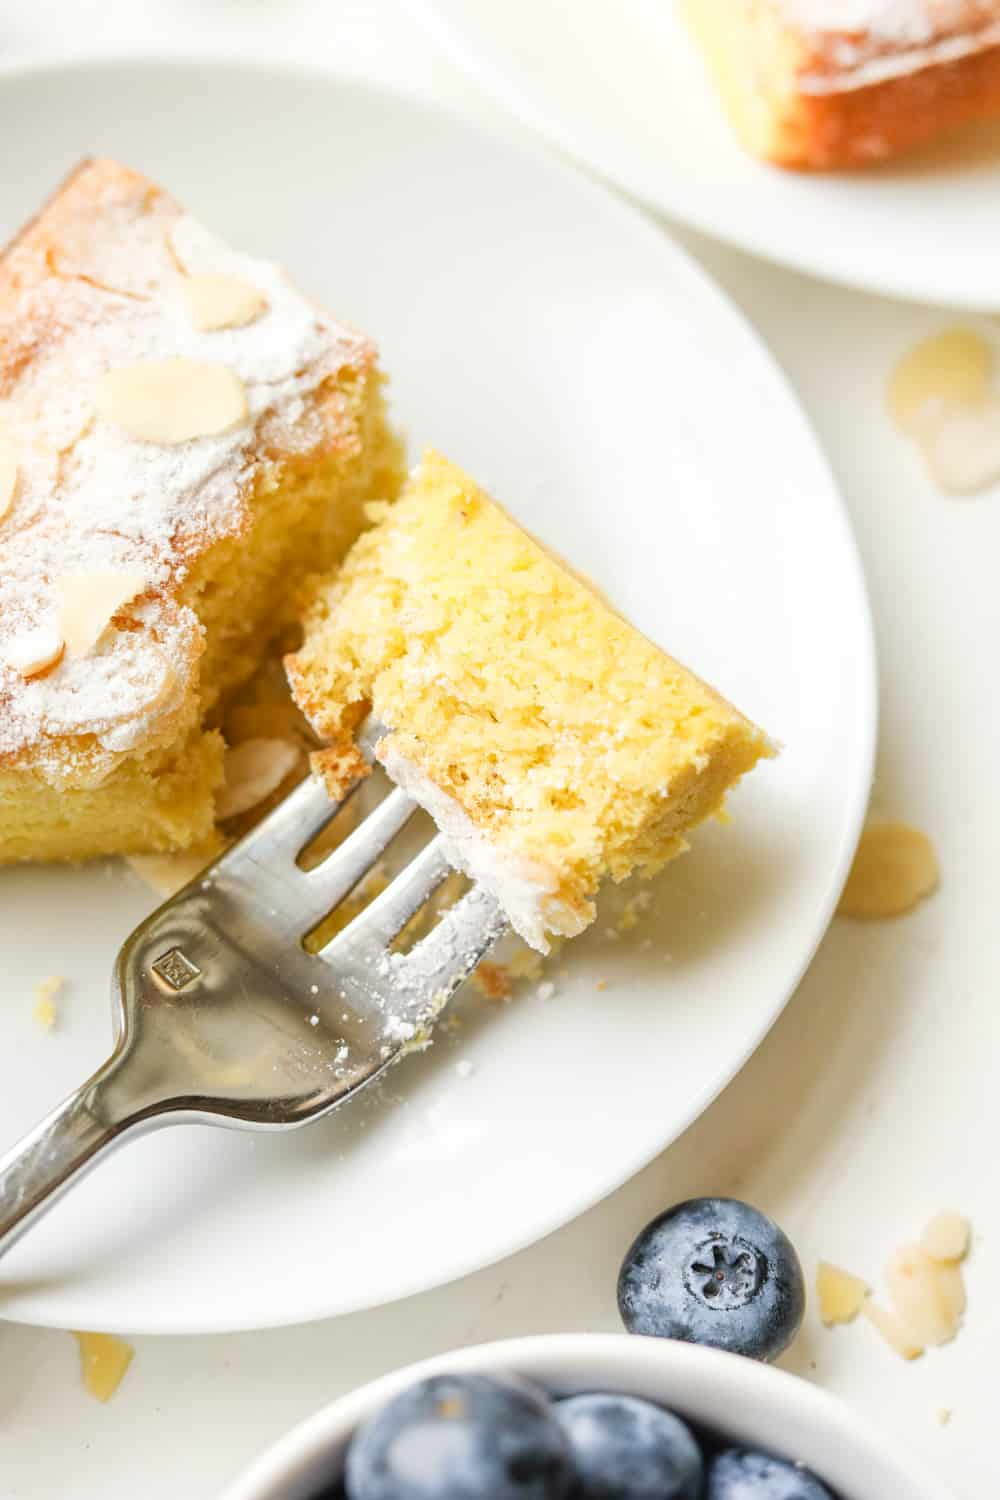 A piece of almond cake on a white plate with a fork holding a piece of the cake.